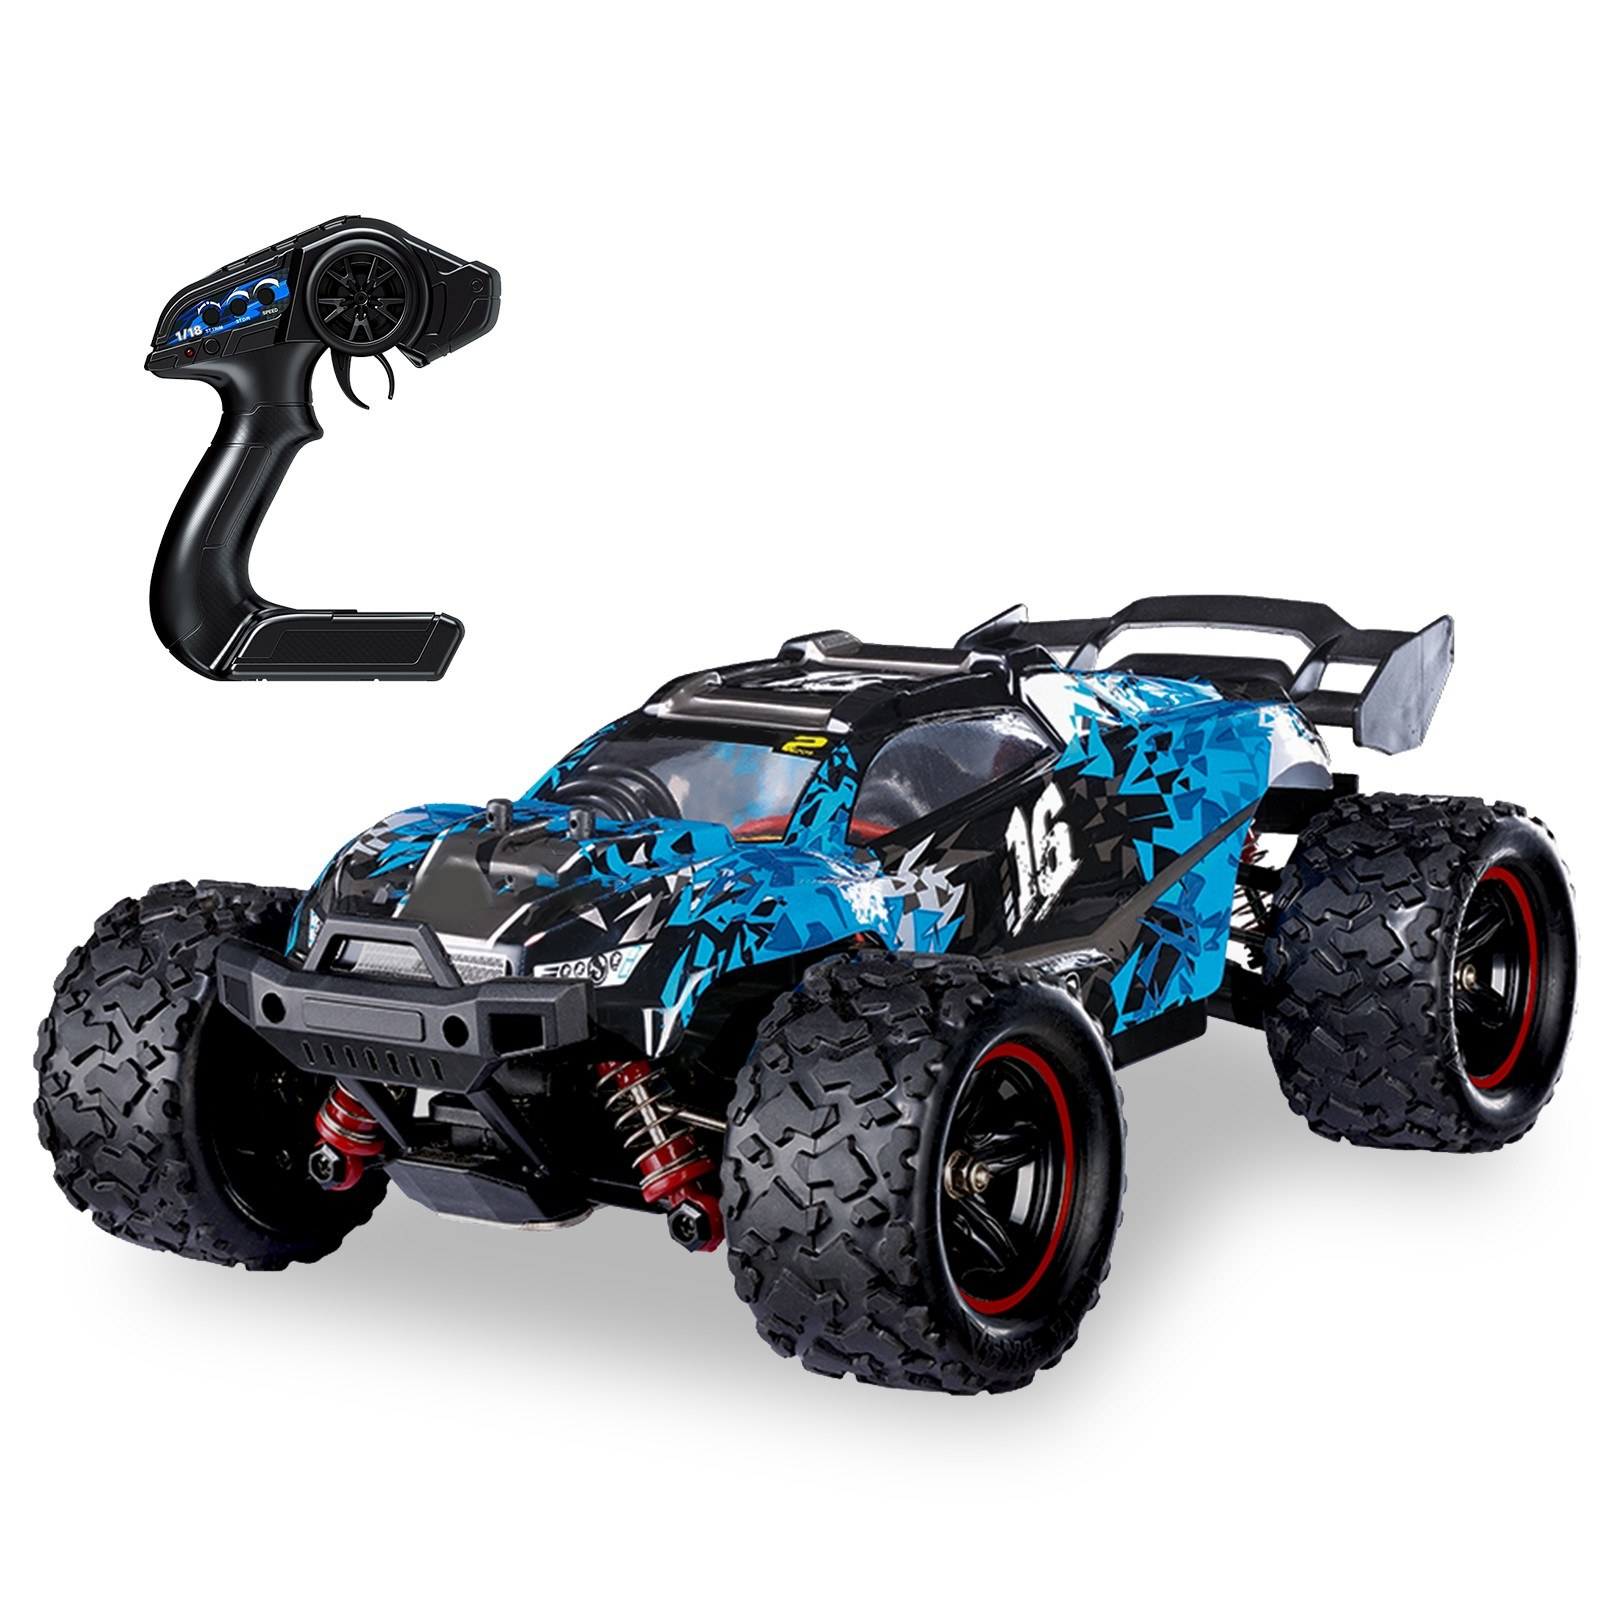 Tomtop - 54% OFF HOSPEED HS18423 RC Car 2.4Ghz 1:18 Off Road RC Trucks, Free Shipping $96.99